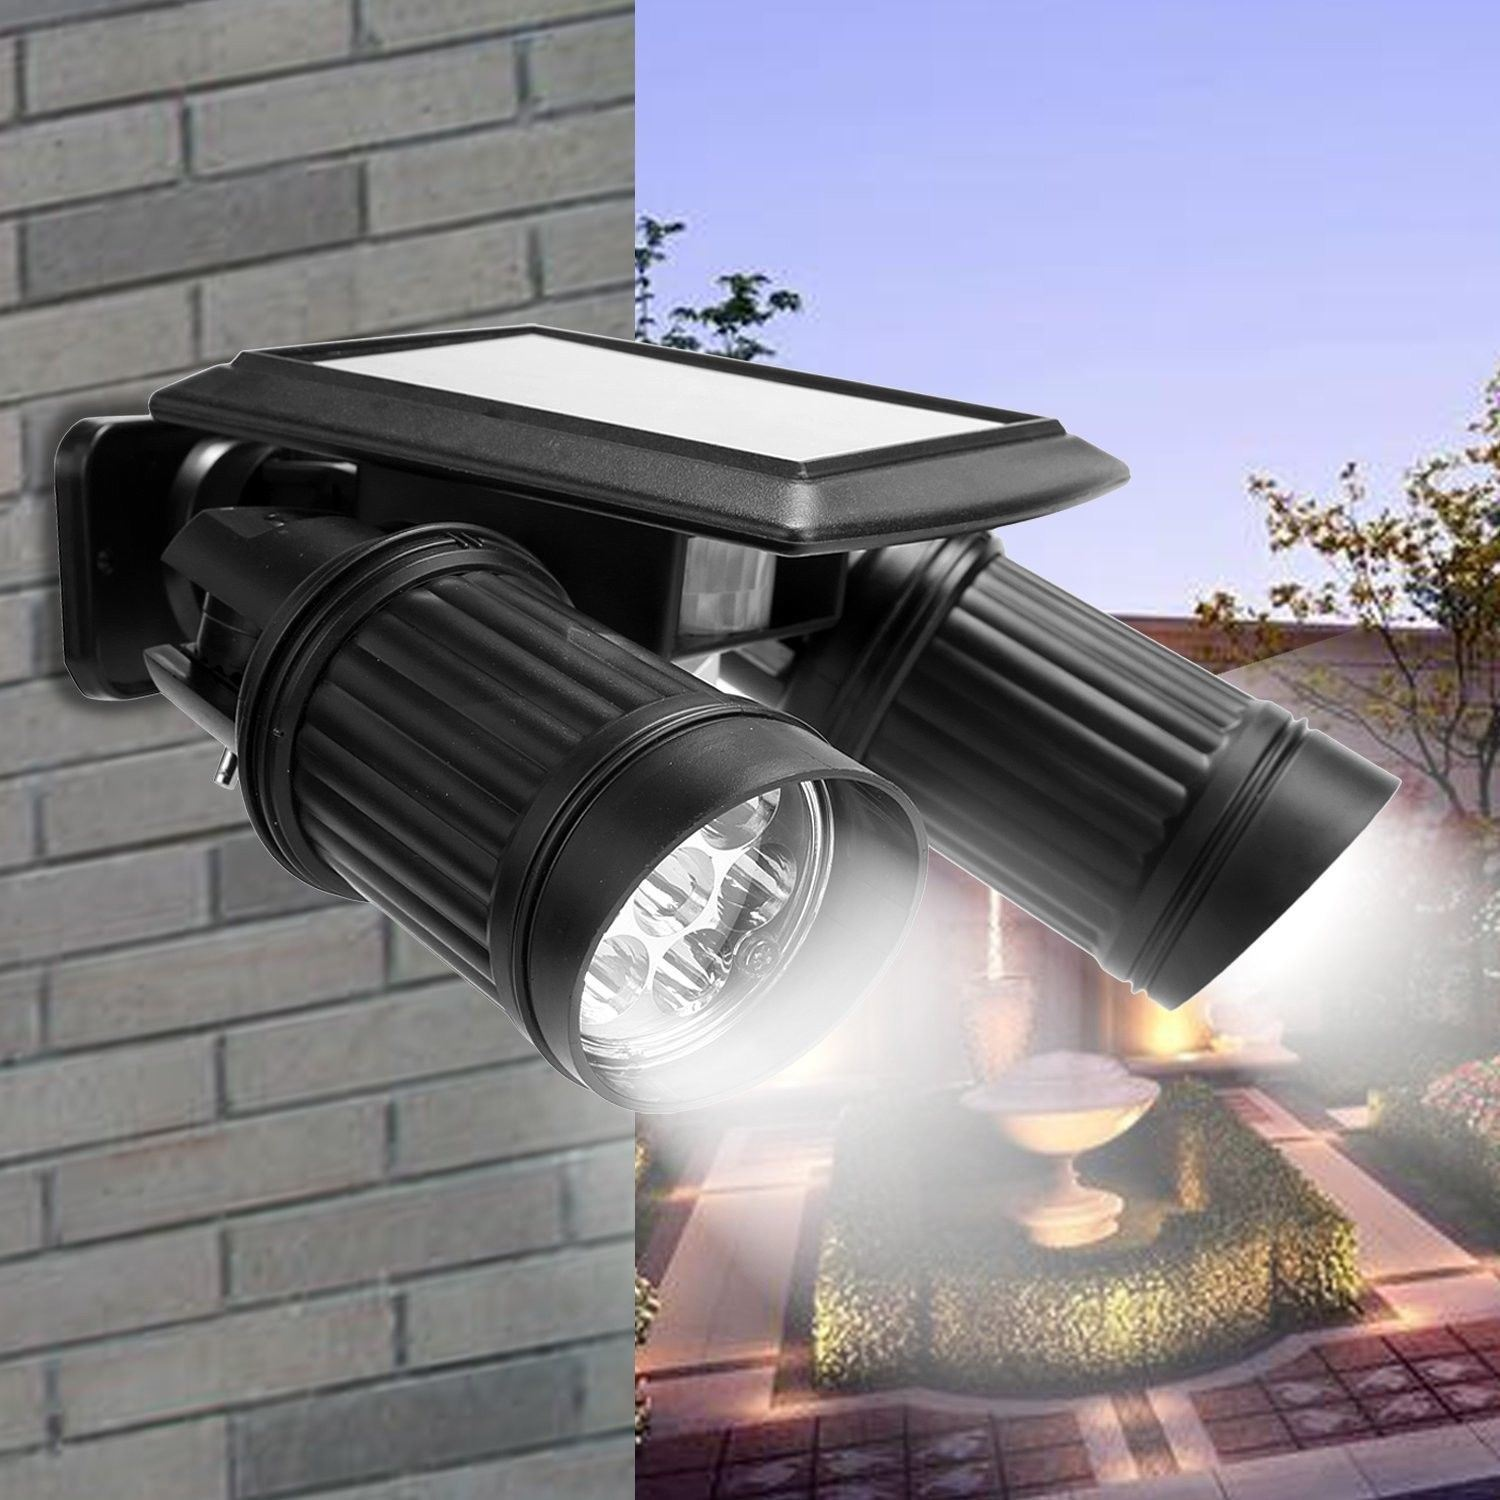 Ikvvt 14 led solar dusk to dawn outdoor waterproof street lamp ikvvt 14 led solar dusk to dawn outdoor waterproof street lamp garden security light in solar lamps from lights lighting on aliexpress alibaba group aloadofball Image collections